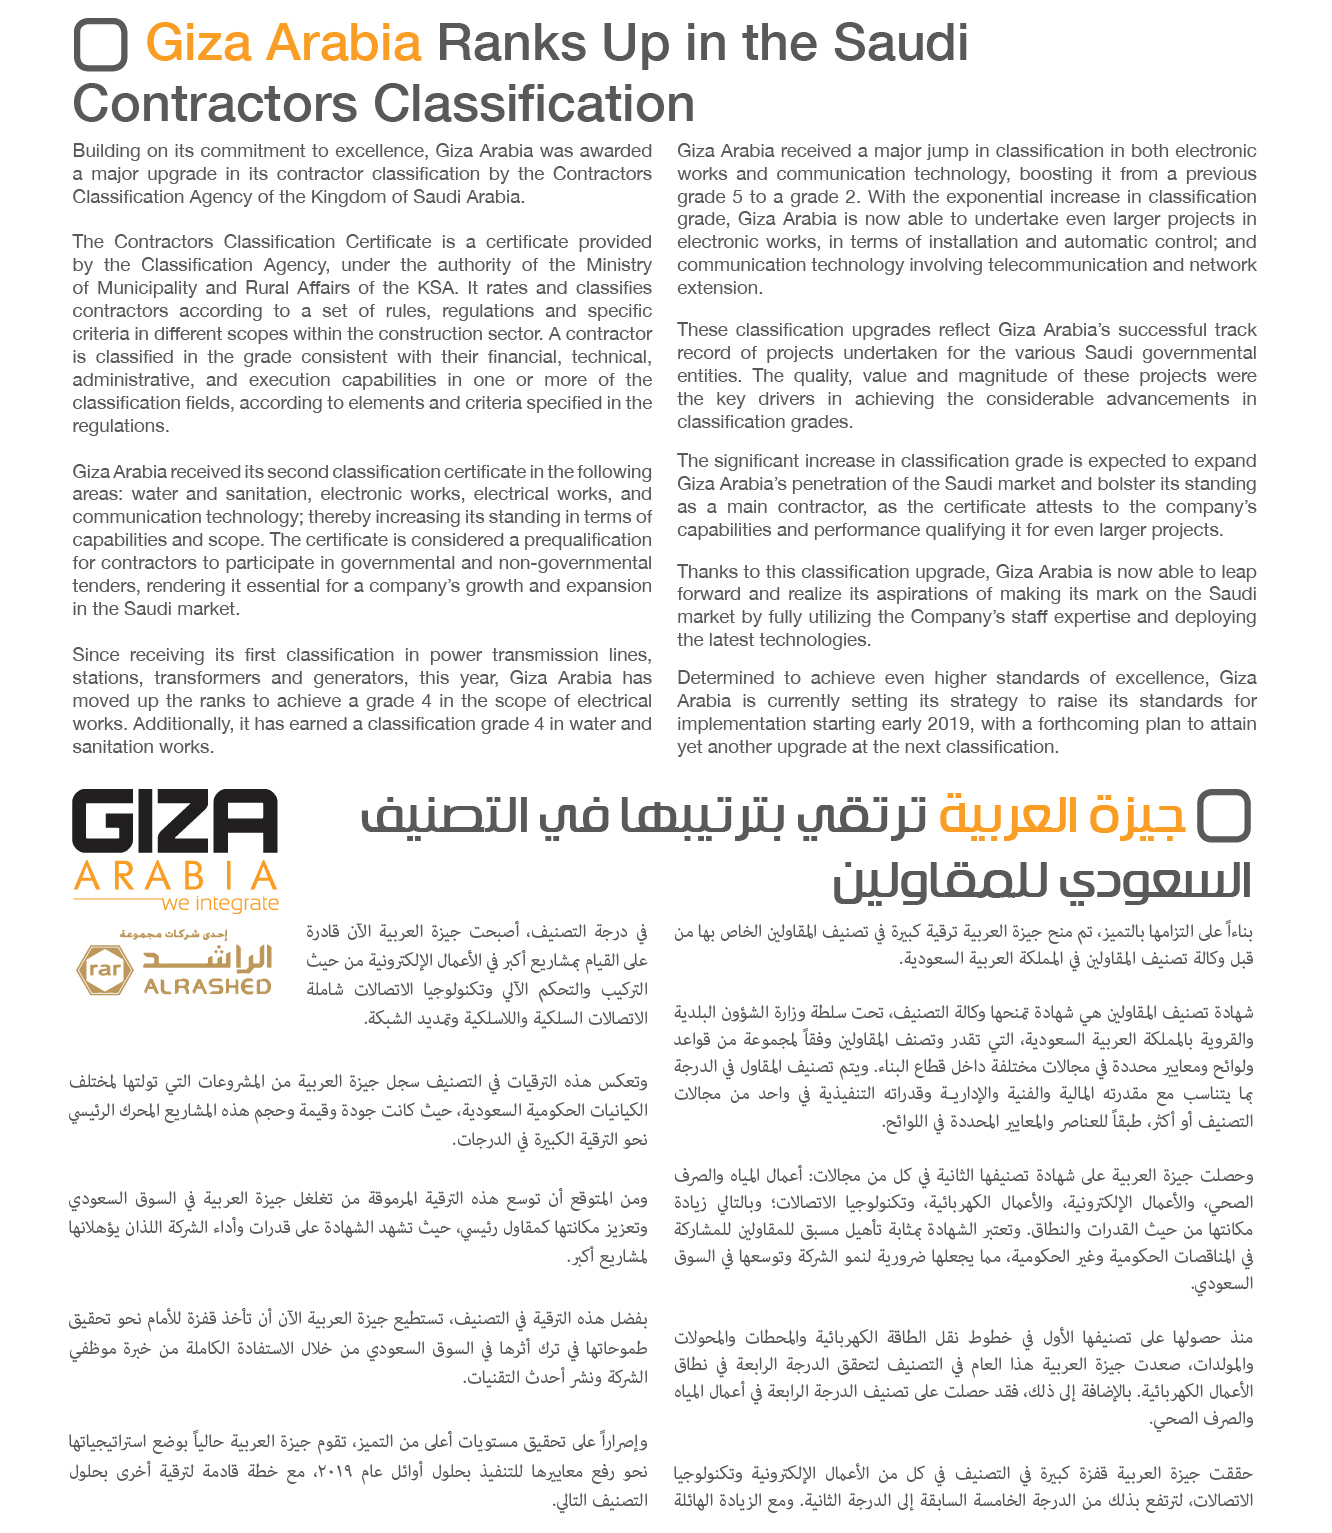 Giza Arabia Ranks Up in the Saudi Contractors Classification